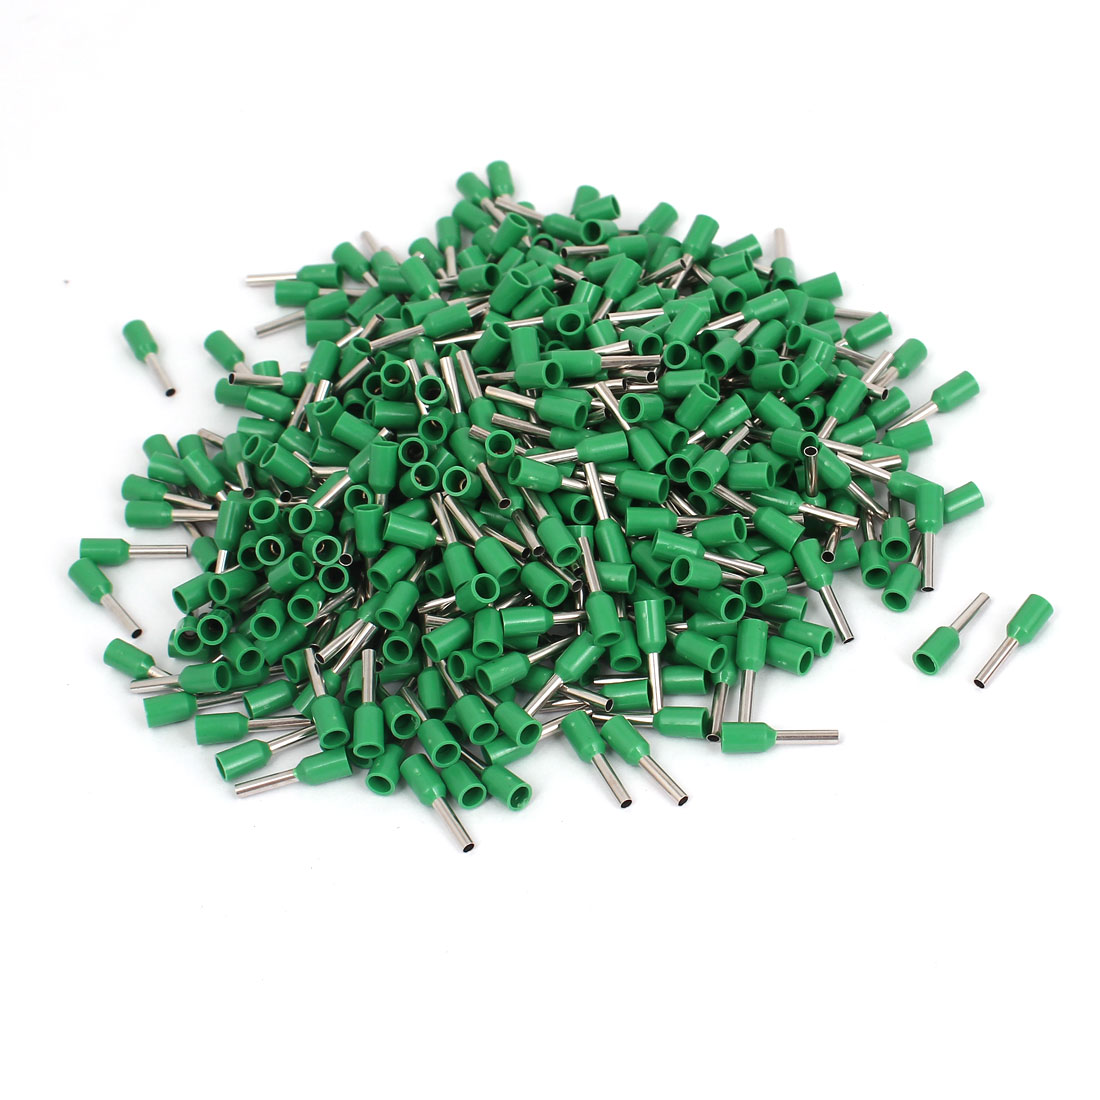 Green Cable E1008 18 AWG Pre Insulating Ferrules Connectors 495 Pcs